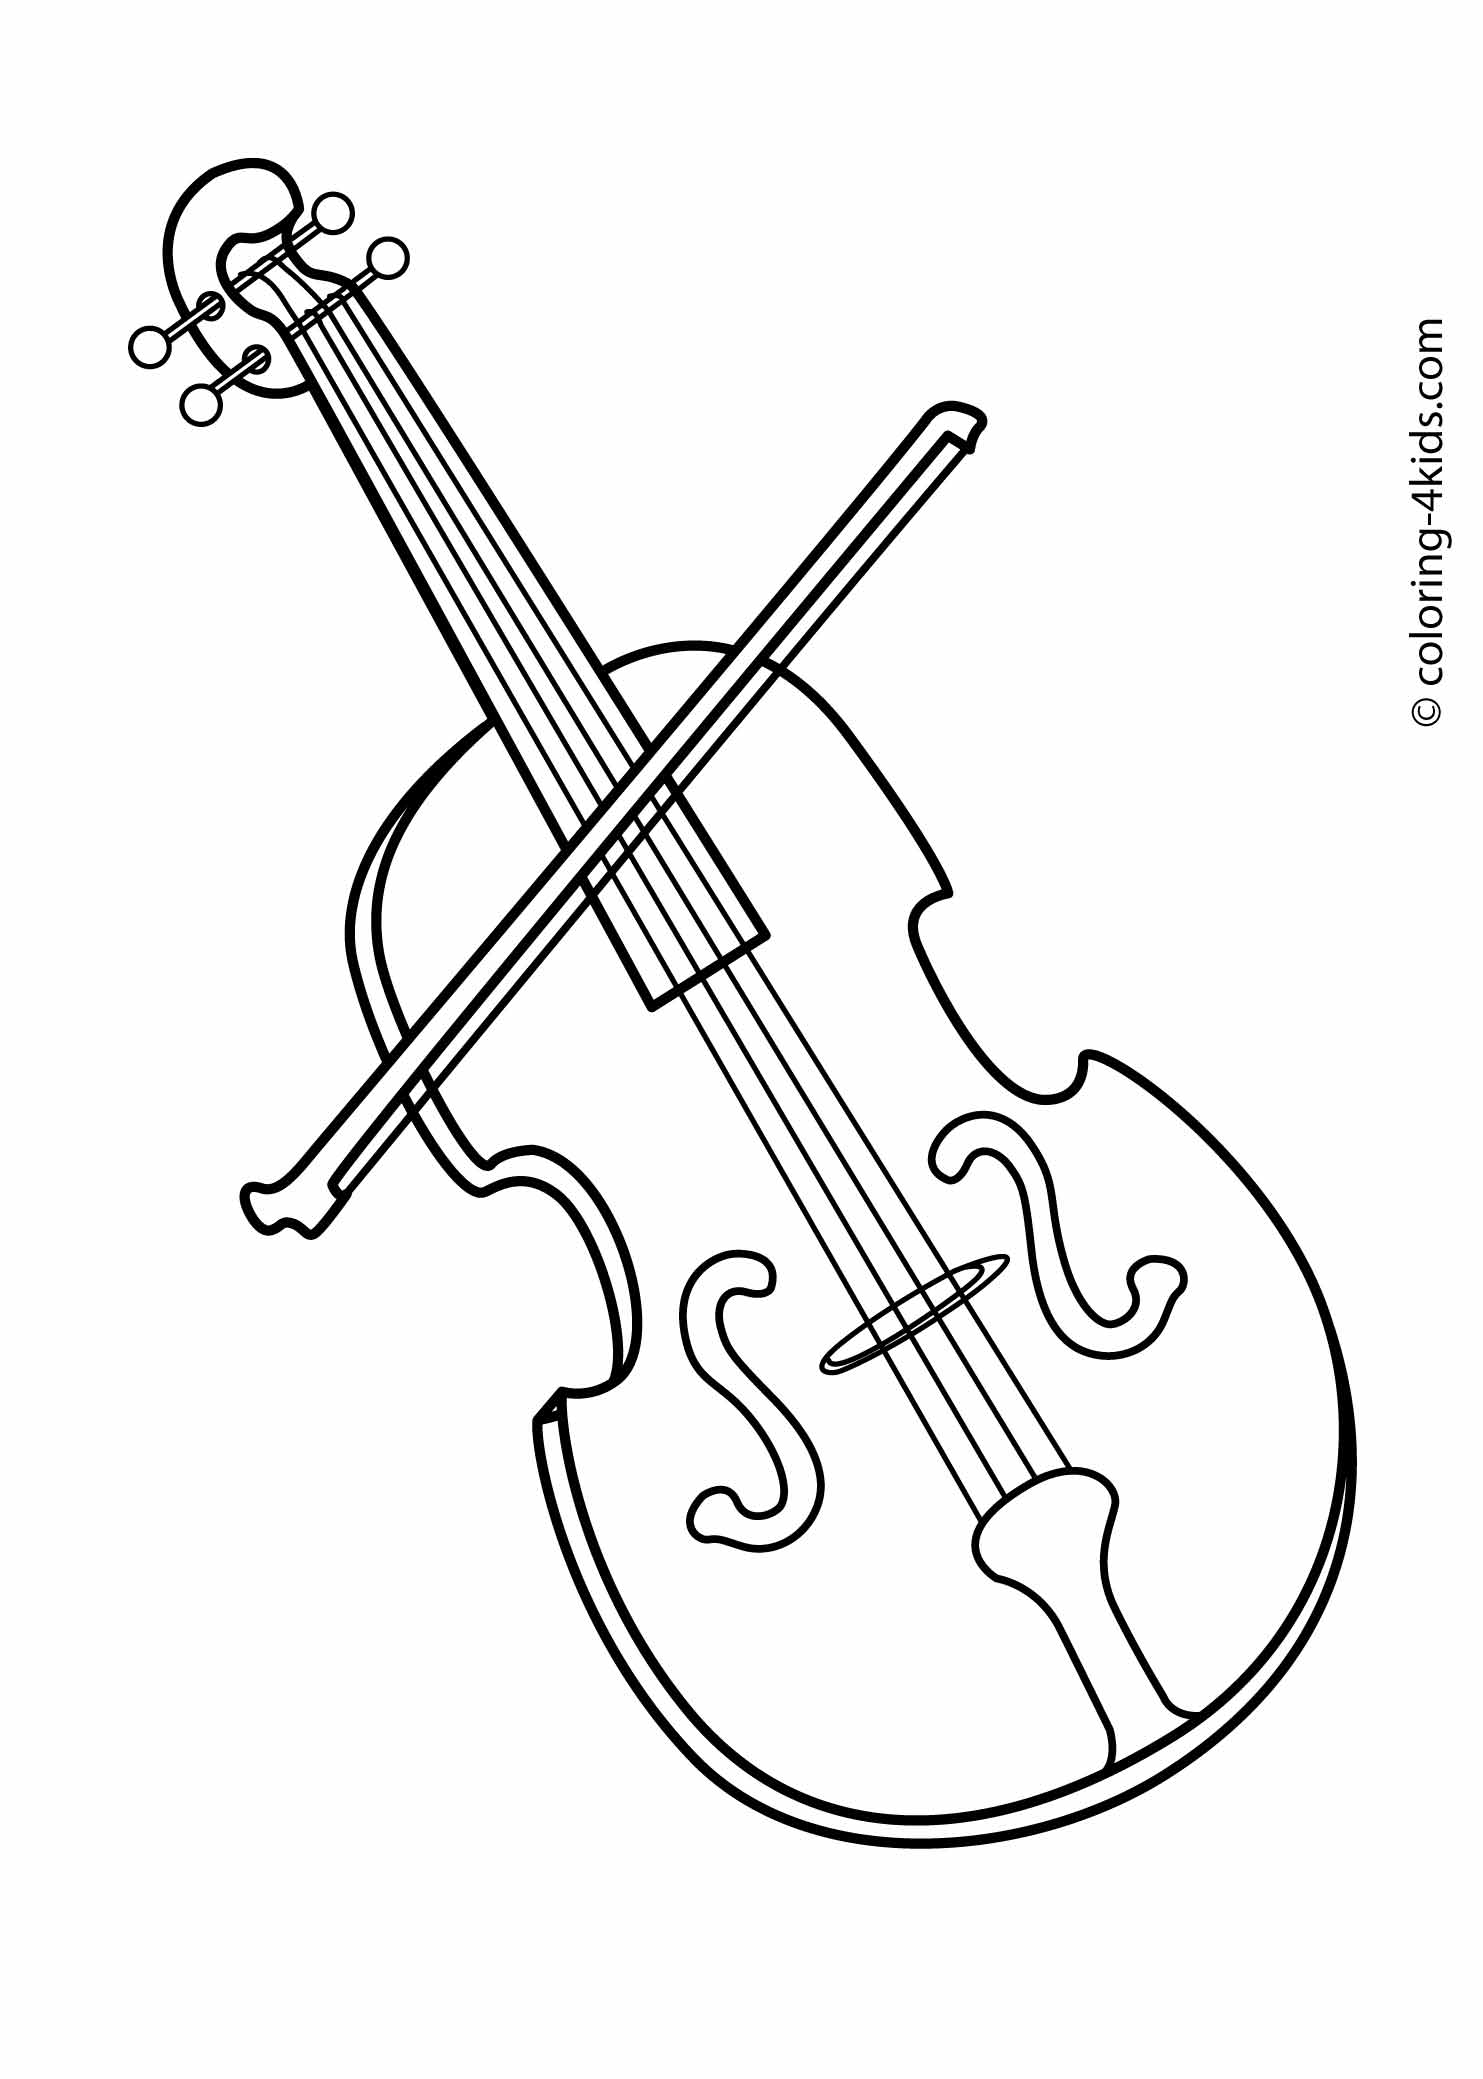 coloring musical instruments drawing instrument coloring pages to download and print for free instruments musical drawing coloring